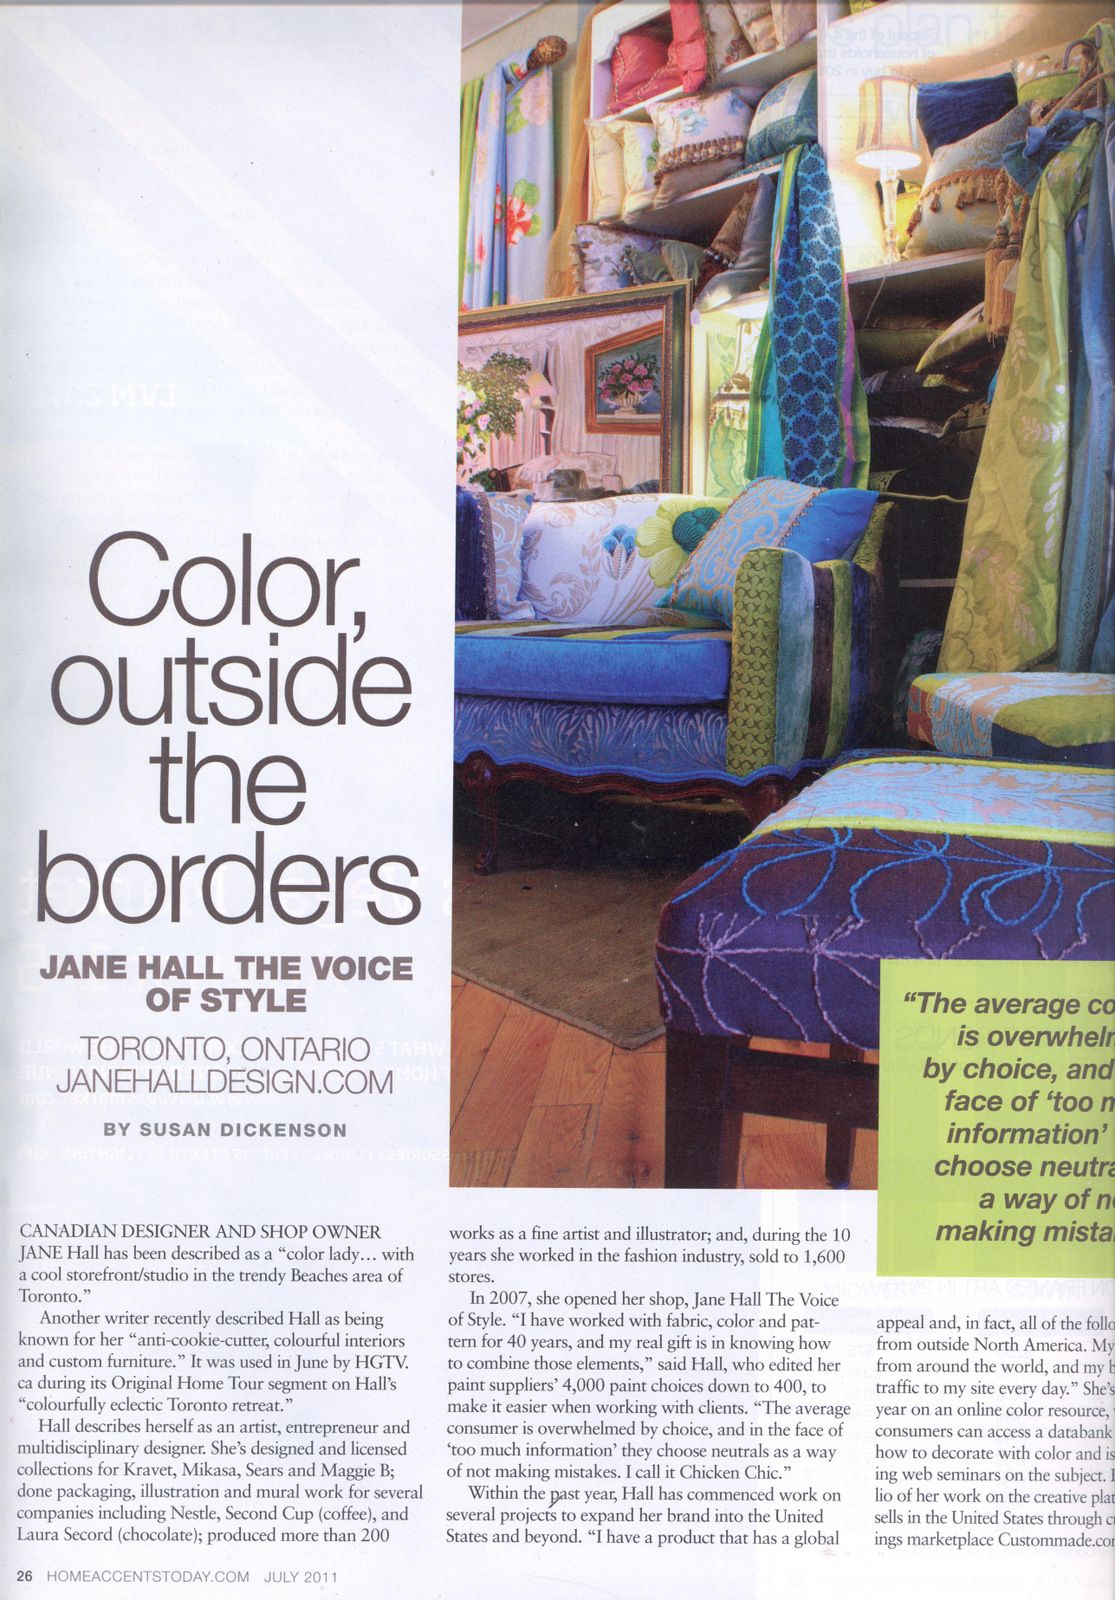 Feature in Home Accents Today.